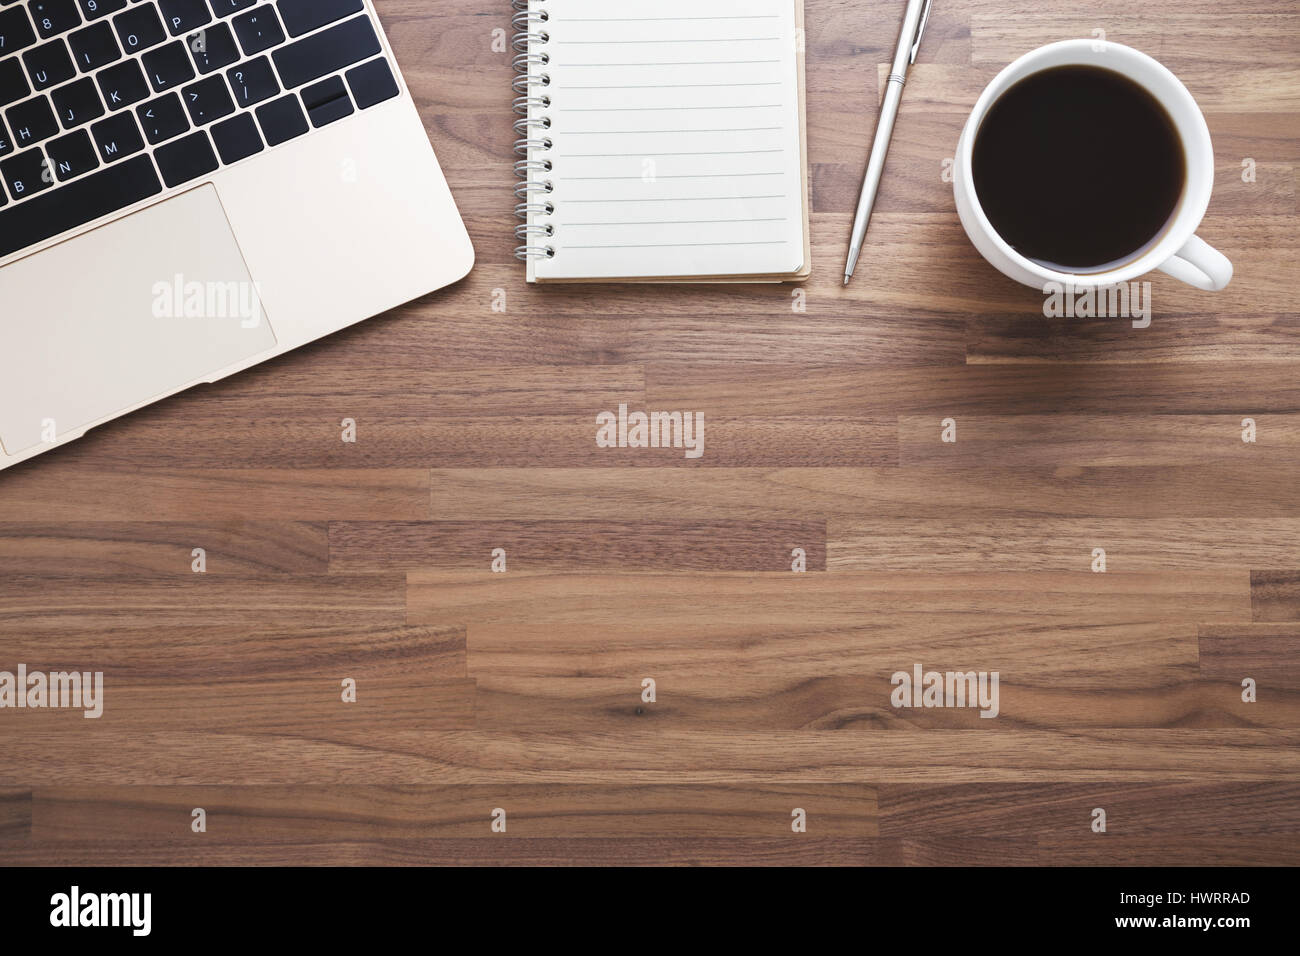 Office wood desk background with laptop and coffee cup